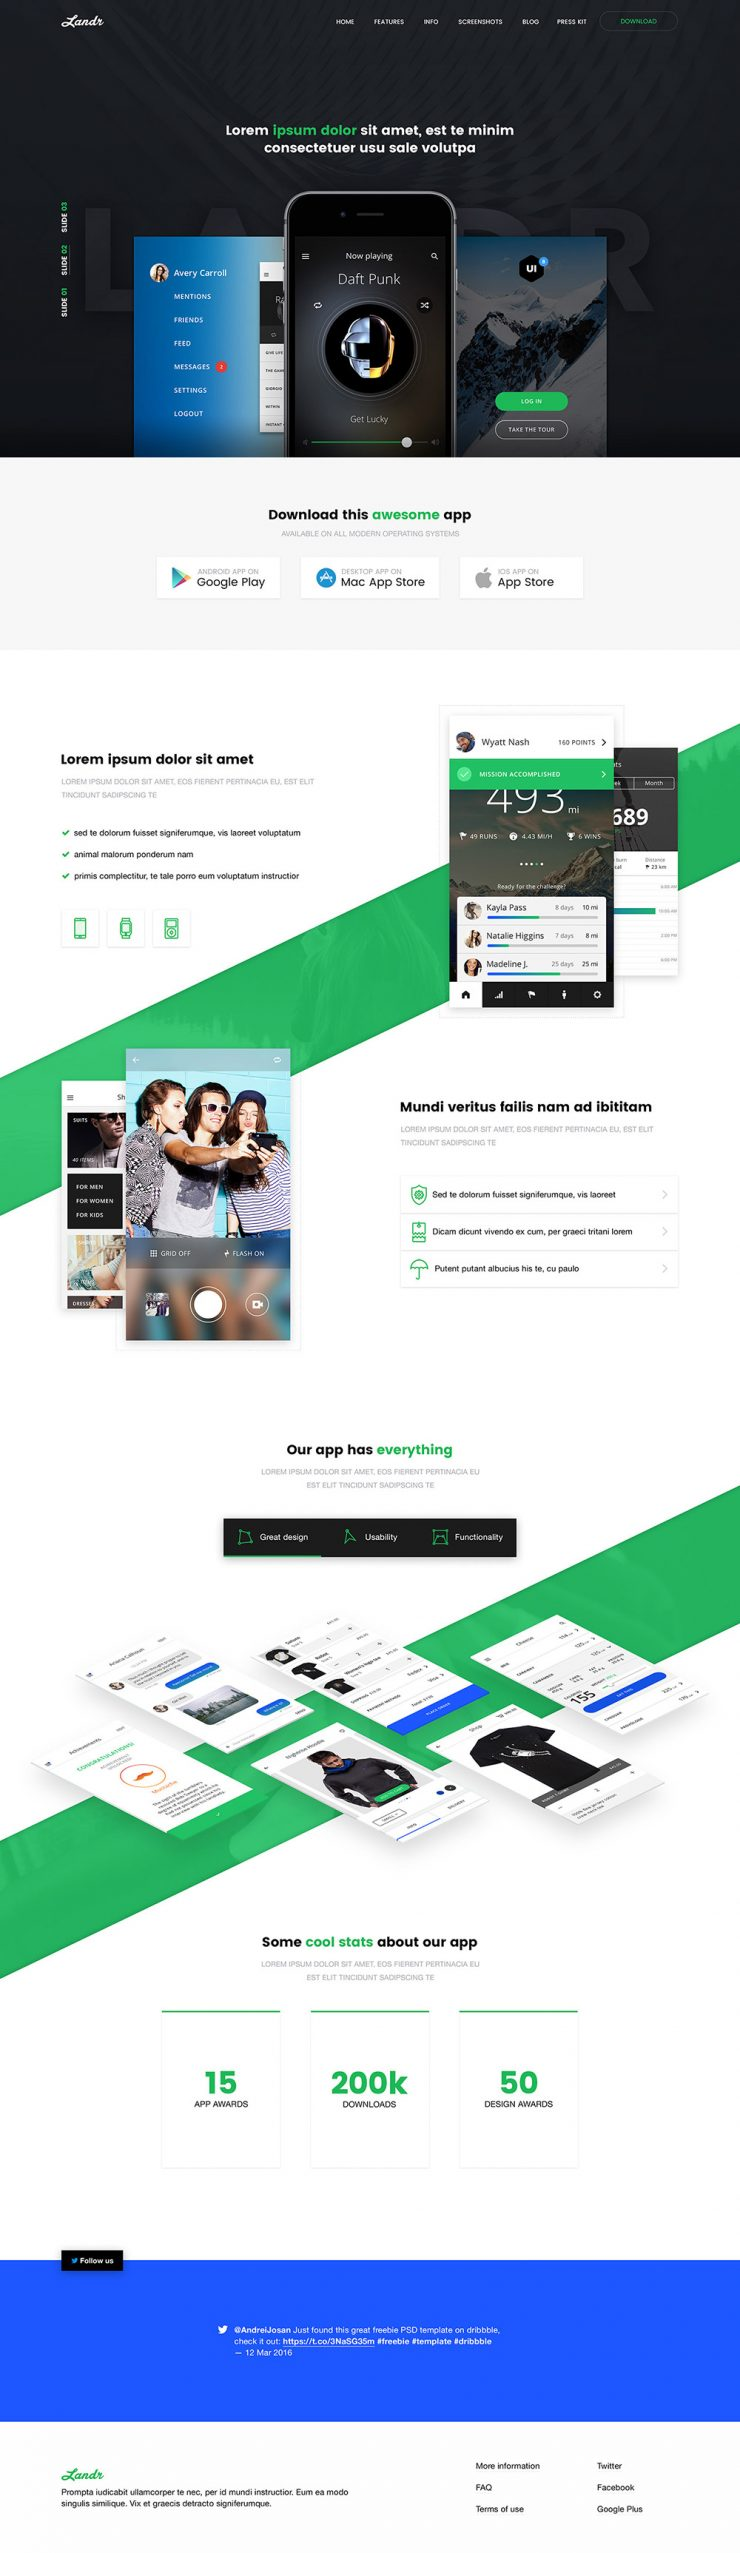 Mobile application landing page free psd template for Mobile site template free download